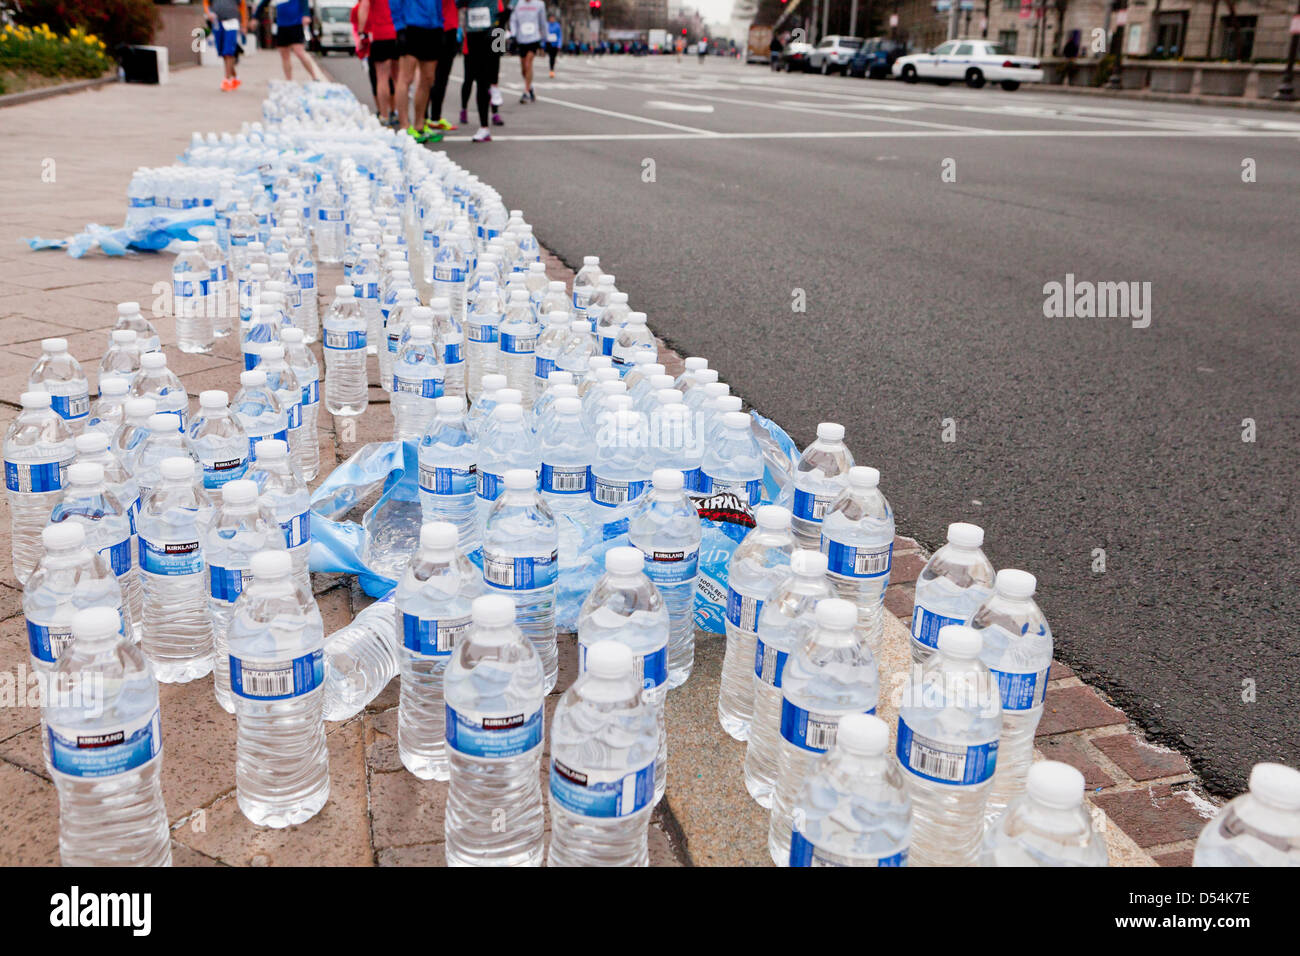 Bottled water lined up for race runners - Stock Image